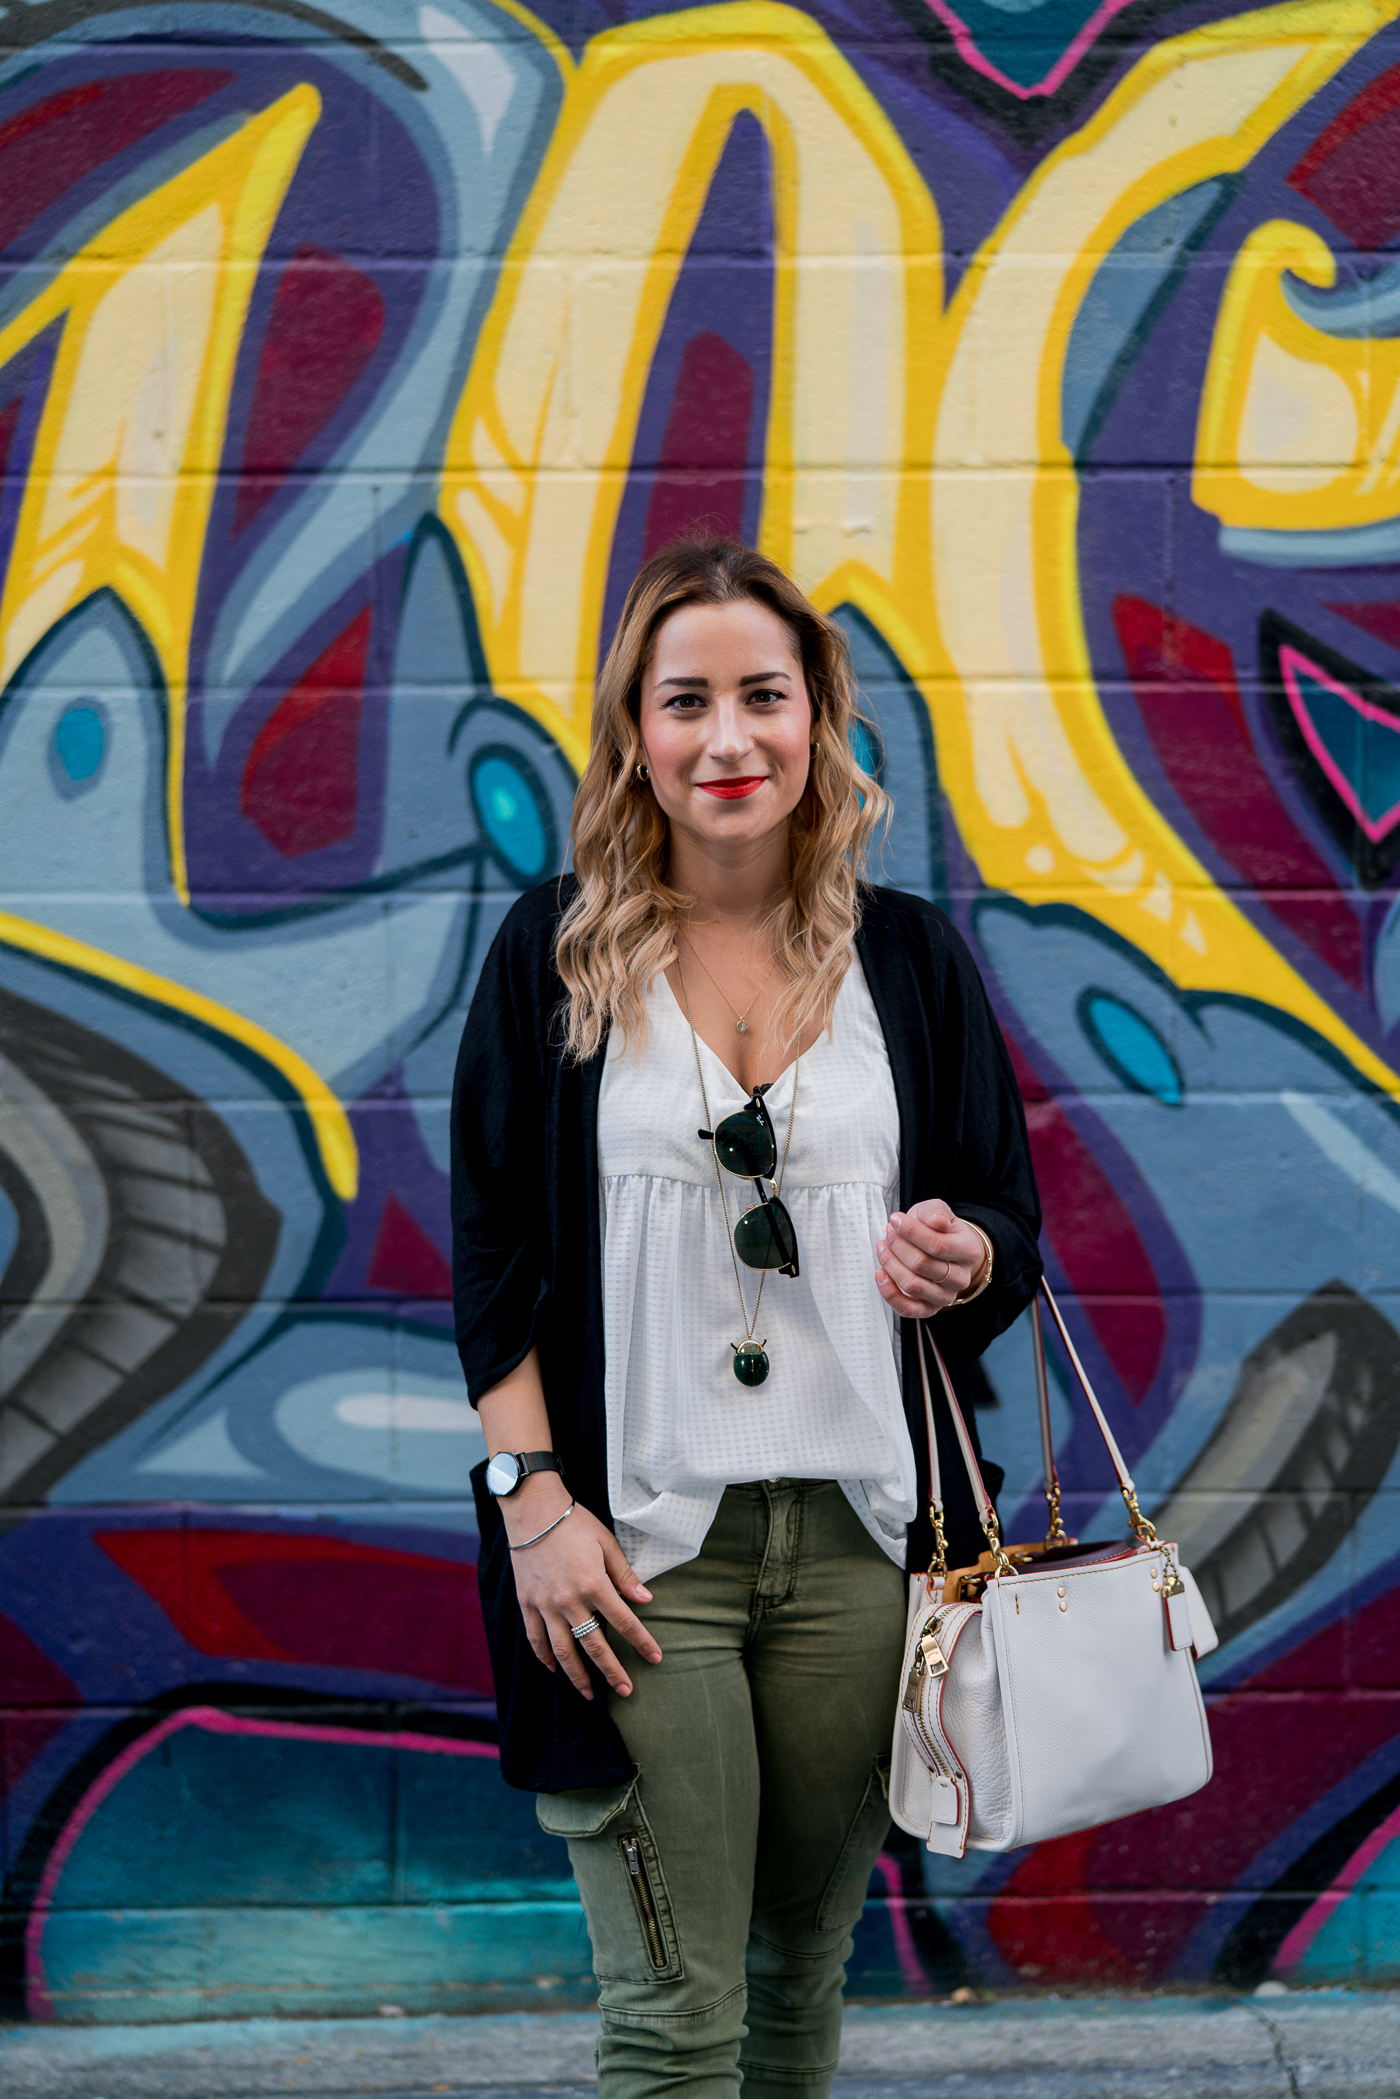 Toronto-based fashion blogger is exploring Kensington Market